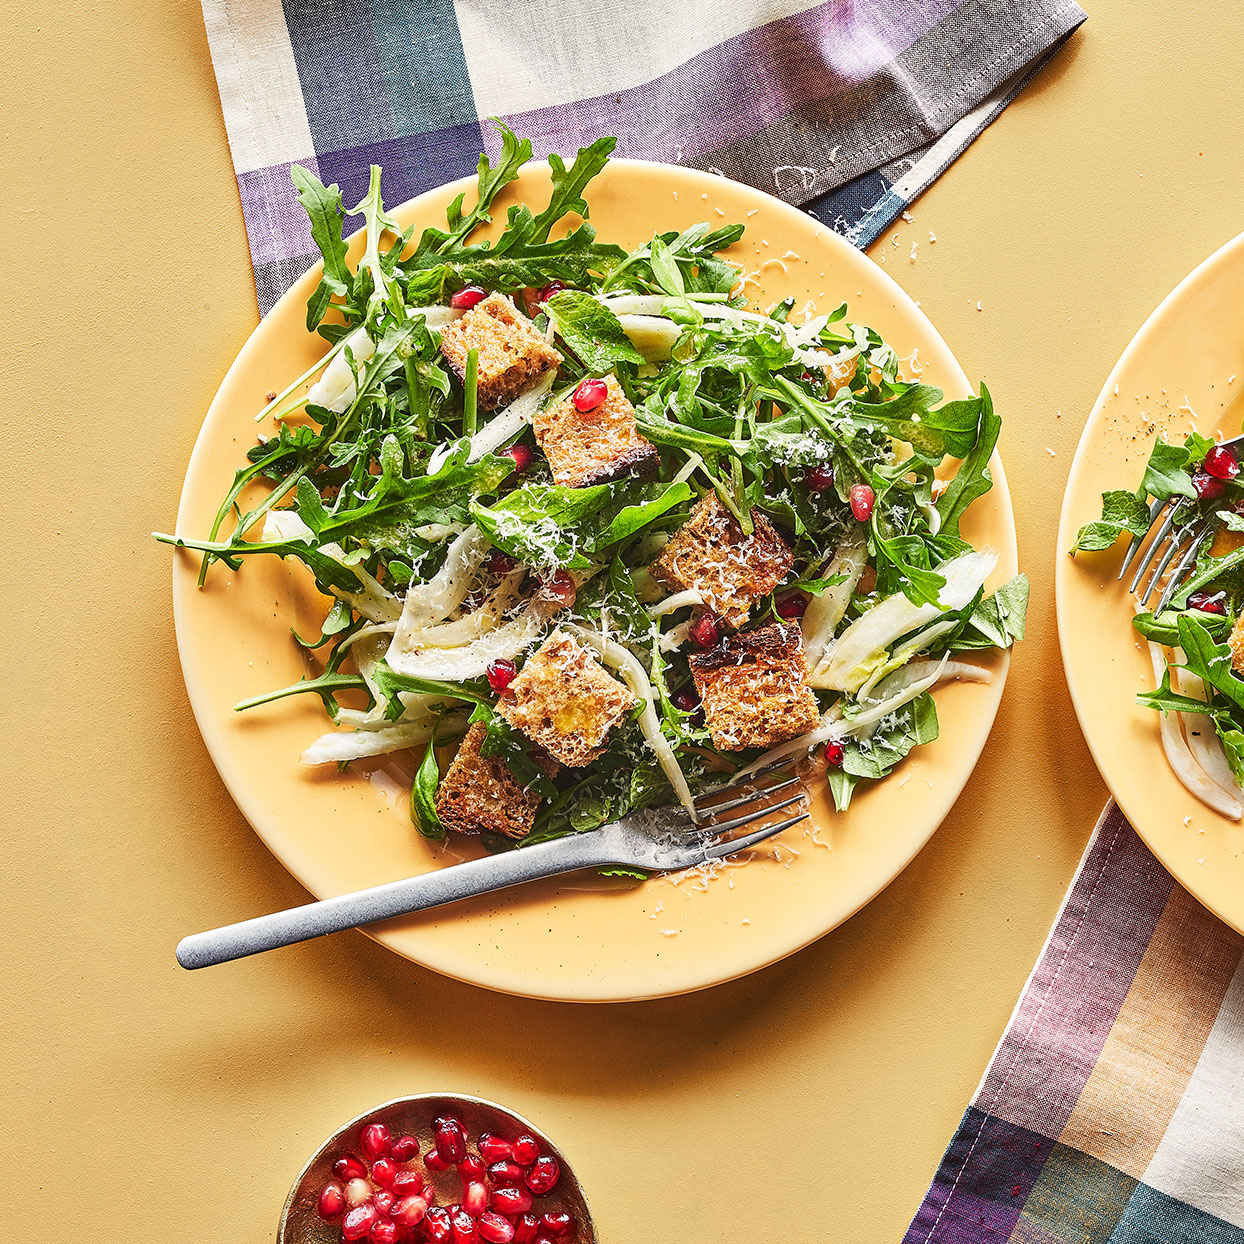 James Beard Award-winner and Top Chef contestant Karen Akunowicz of Fox & the Knife in Boston turns this Italian-inspired bread salad into a hearty fall dish. Instead of tomato, fennel mingles with the vinaigrette to let the bread soak up its licorice notes, while the arugula lends the dish a hint of pepper. The lemony vinaigrette is so simple and tastes so much fresher than store-bought. Make a double batch to toss on other salads. It will keep in the fridge for up to a week. Add some shredded chicken to the salad to make it a meal.